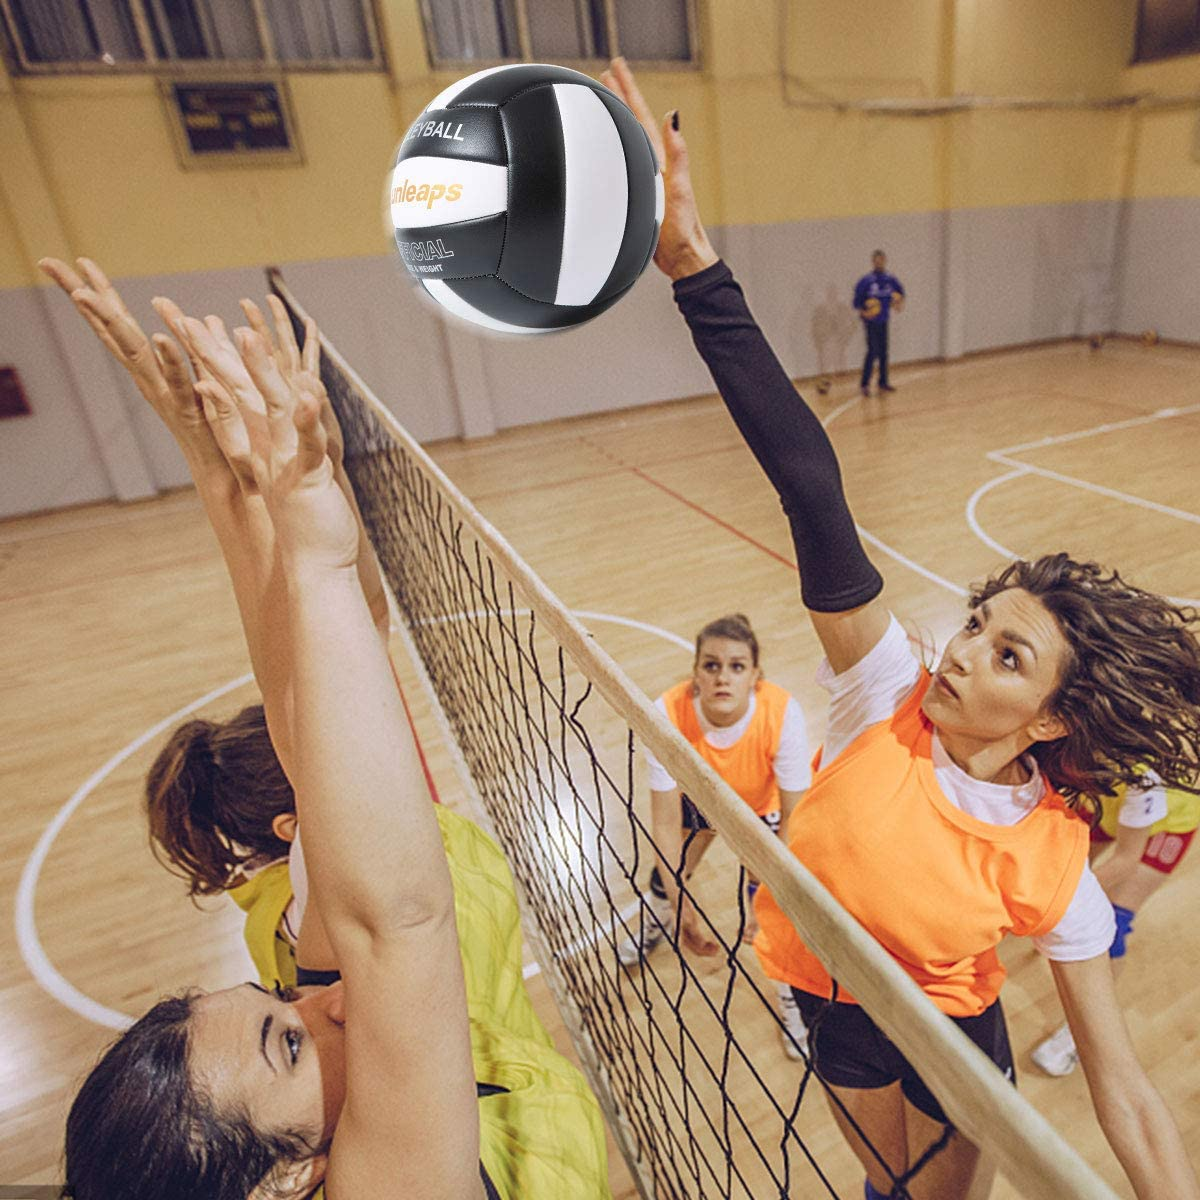 Runleaps Soft Indoor Volleyball Waterproof Volleyball Light Touch Recreational Ball for Pool Gym Indoor Outdoor Size 5